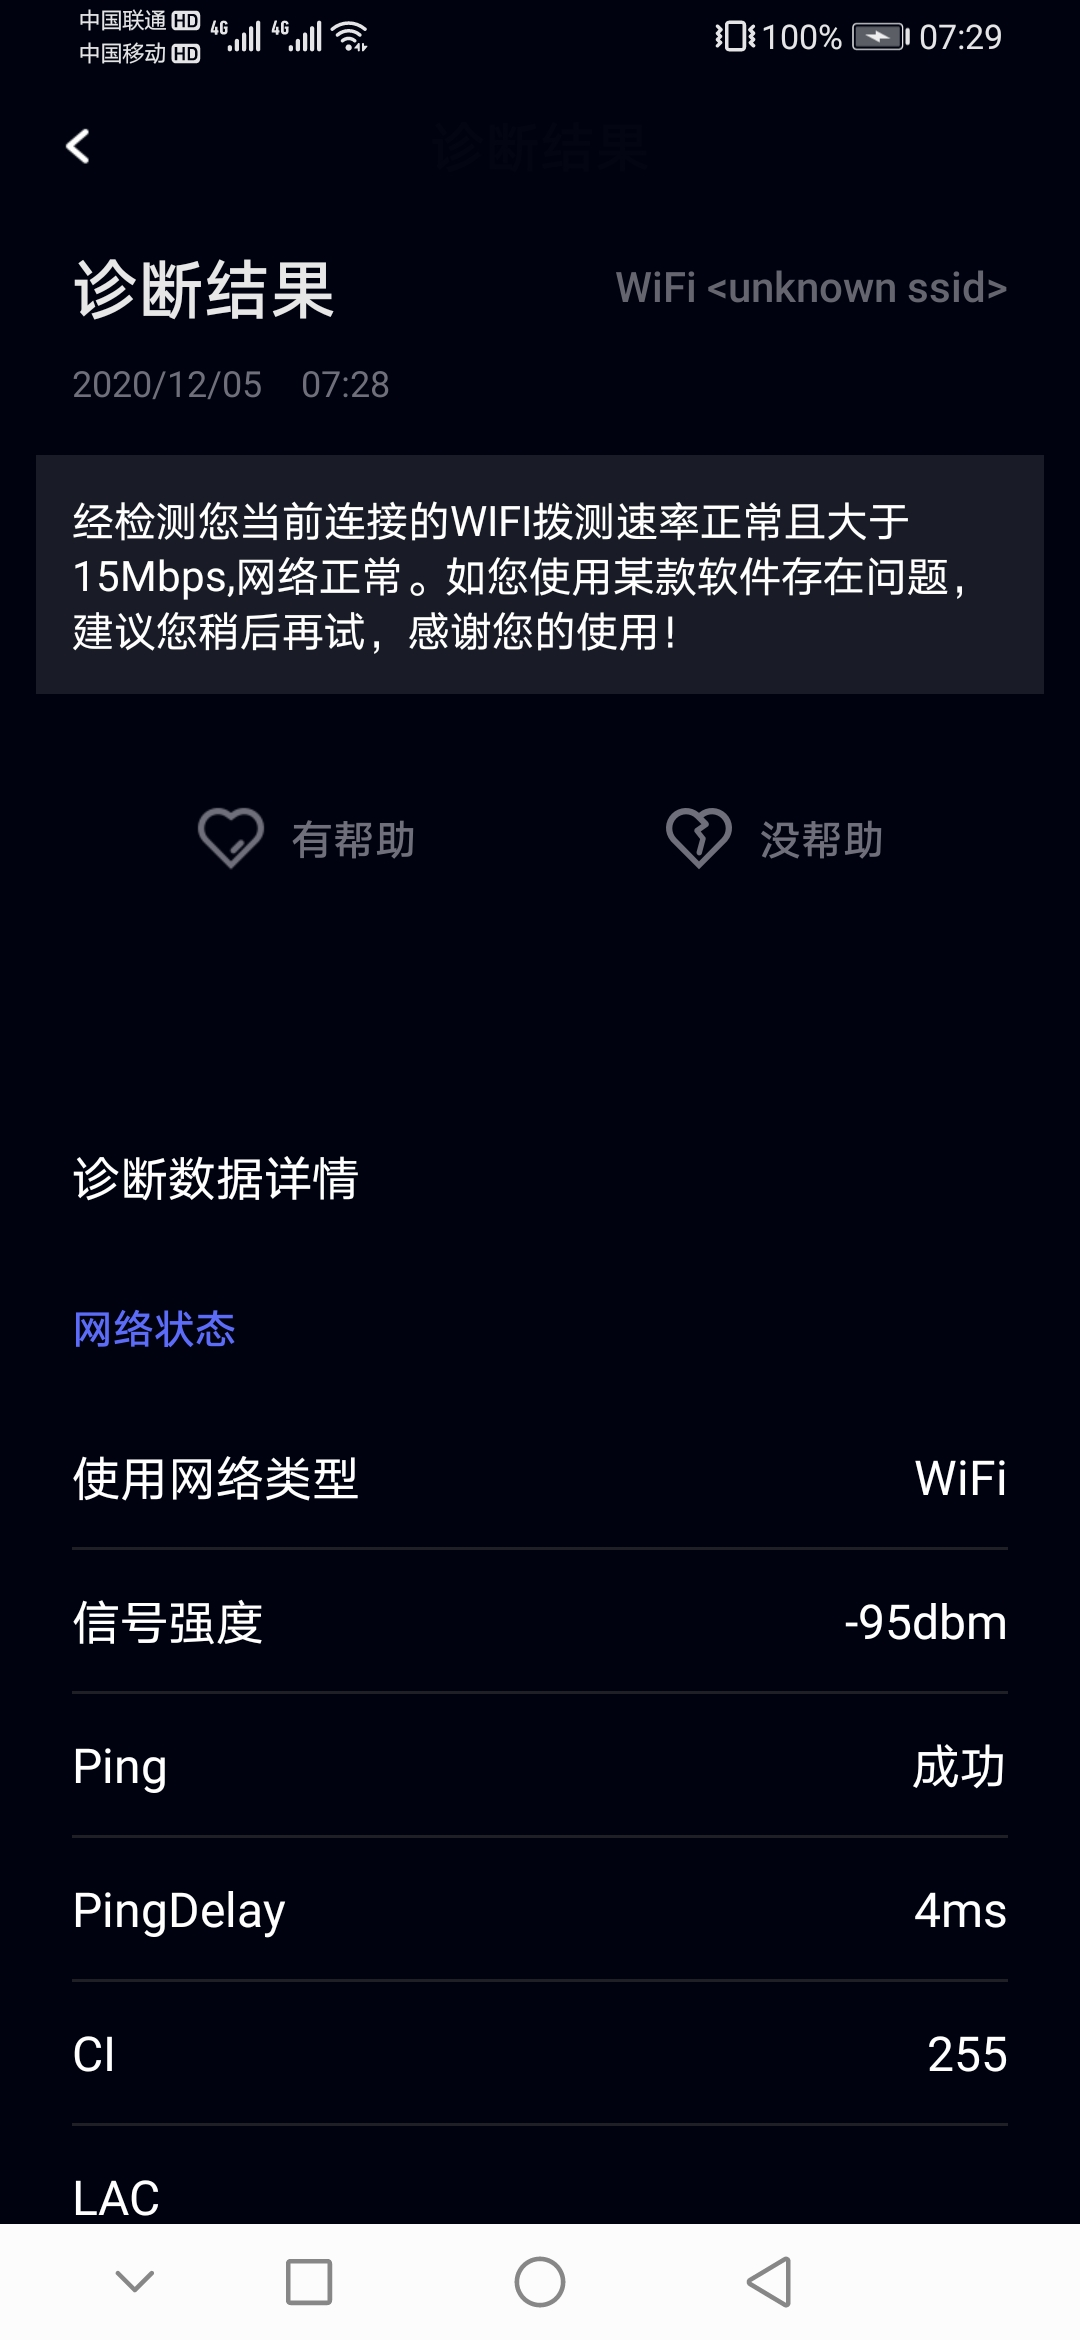 Screenshot_20201205_072941_com.huawei.genexcloud.speedtest.jpg